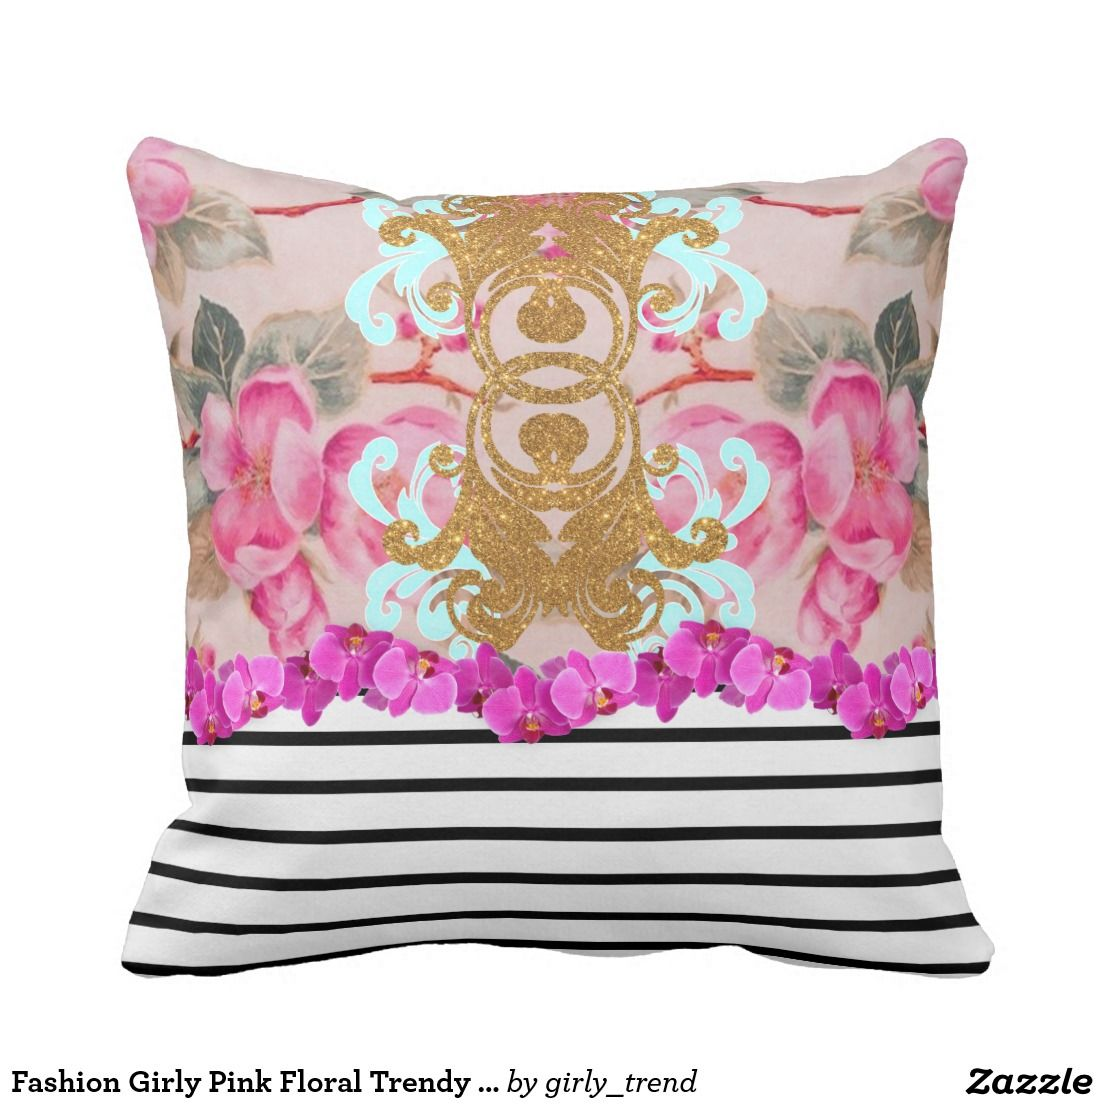 navy people charlottewinter works small decor trendy pillow bg throw pillows throwpillow blush mustard phones abstract etc cell dorm art michel with for girly pink